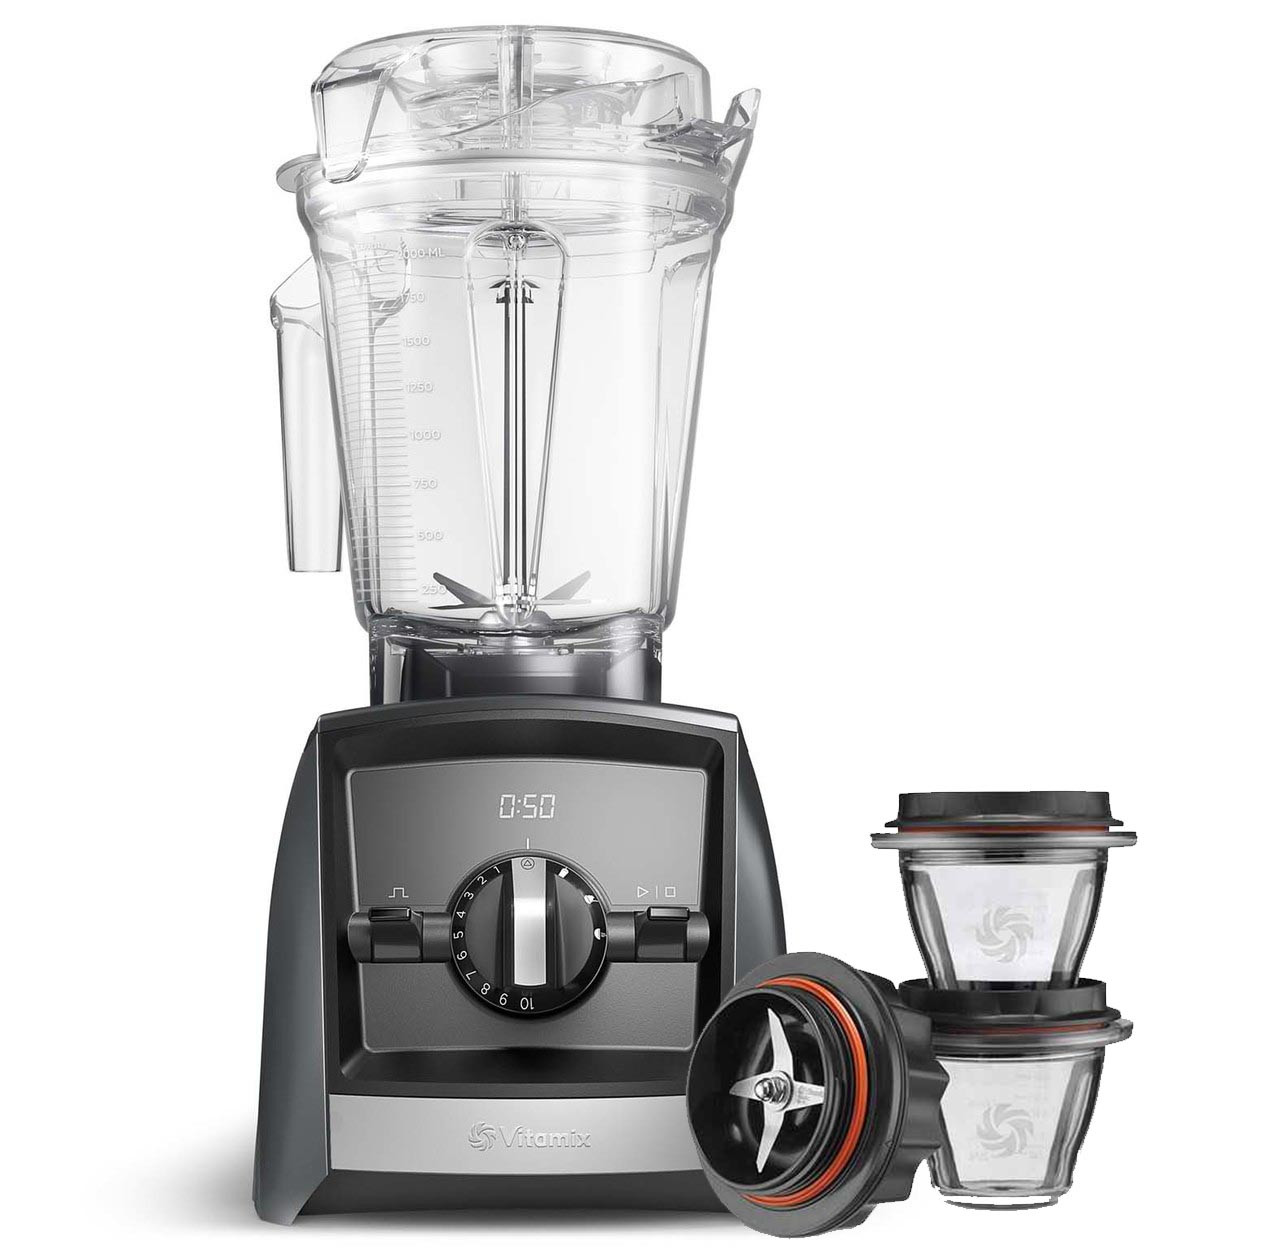 Vitamix Ascent Series A2500i Blender in Grey with 225ml Blending Bowl Starter Kit